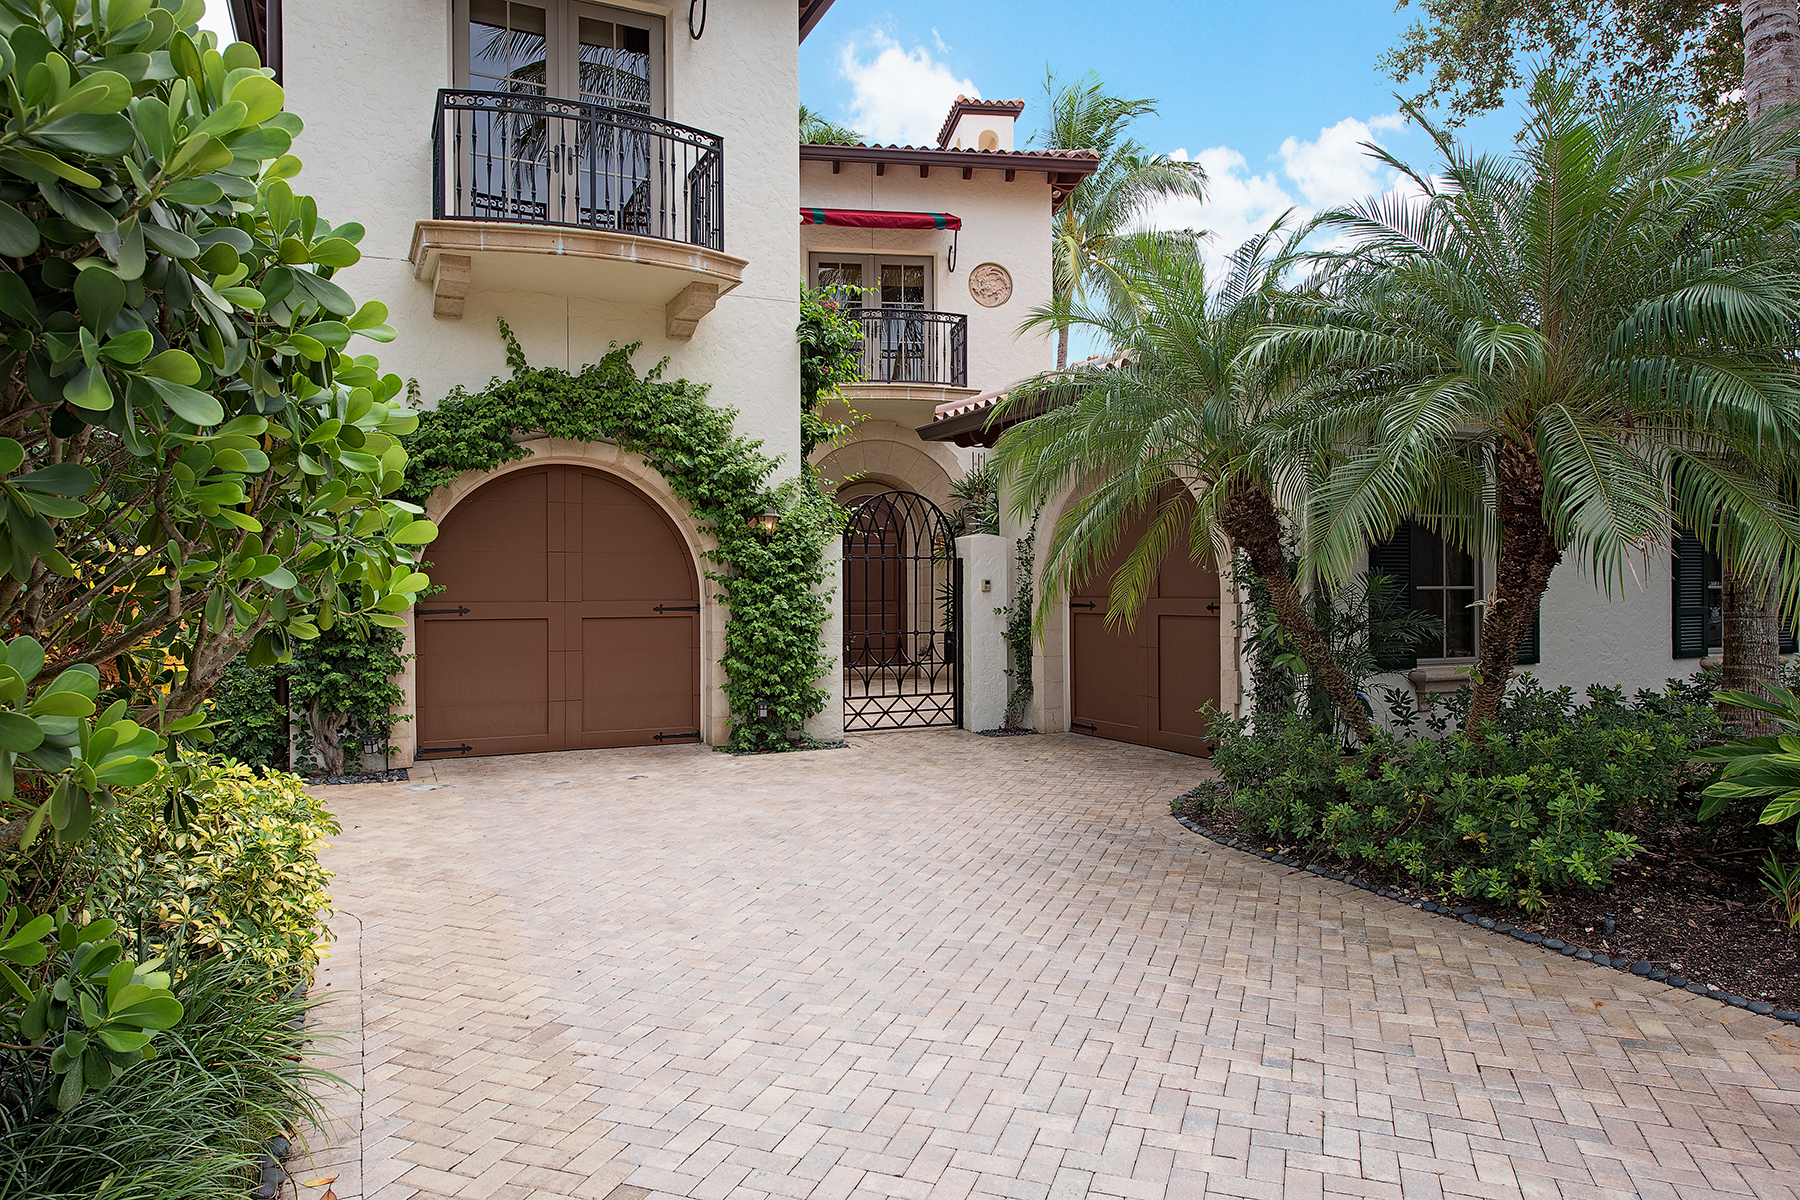 Property For Sale at 1350 Noble Heron Way , Naples, FL 34105